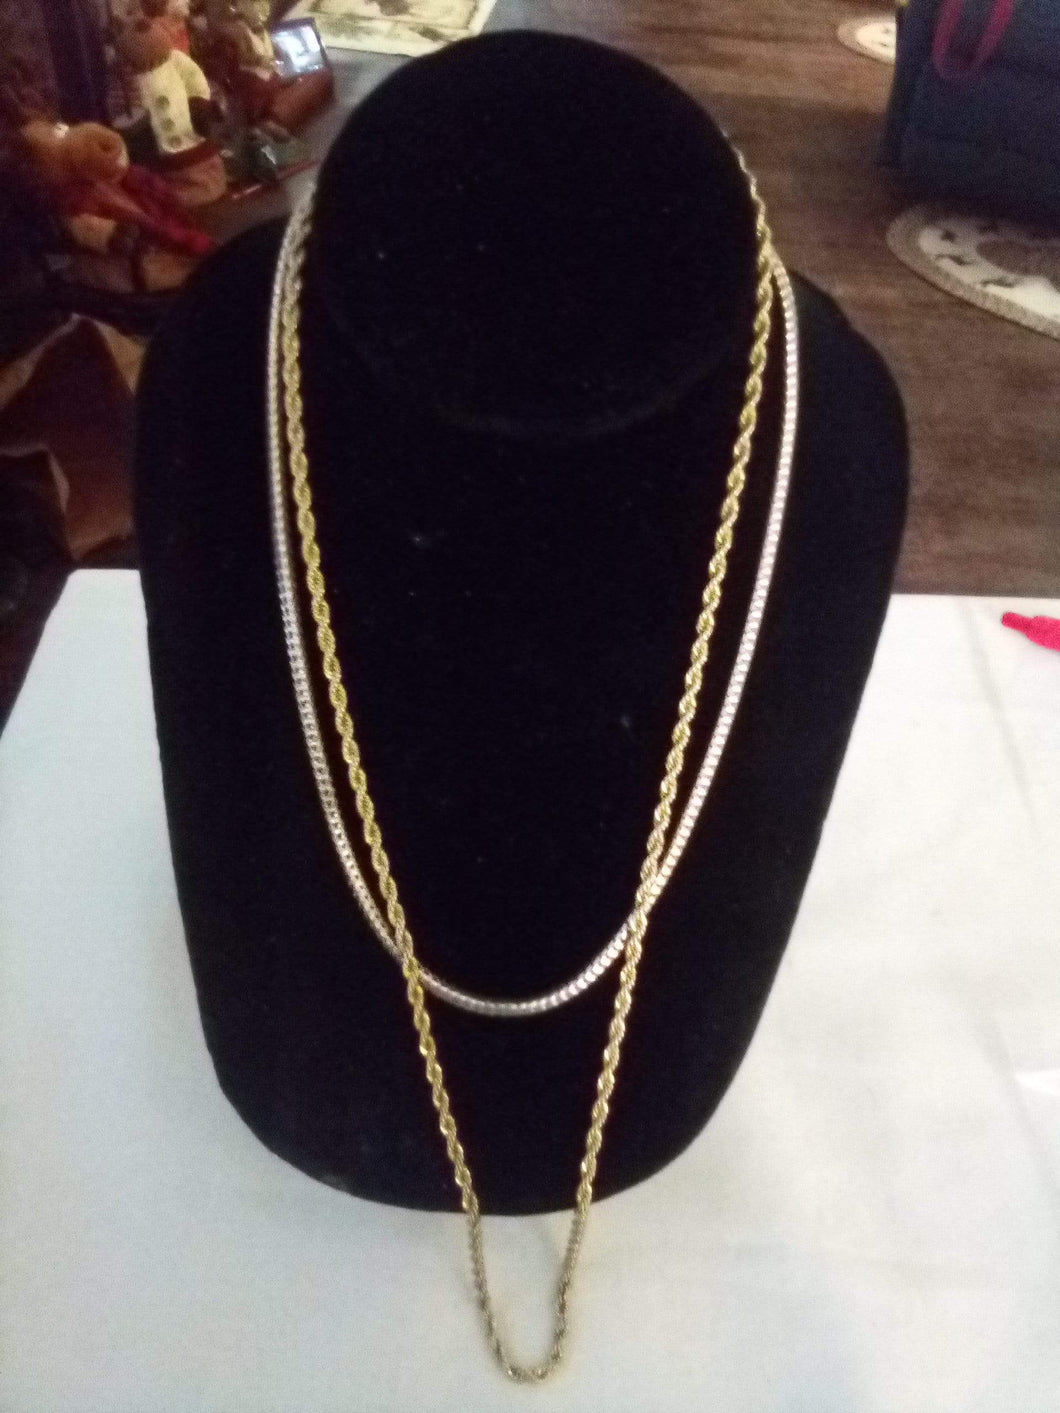 A pair of silver and gold tone chain like necklaces - B&P'sringsnthings